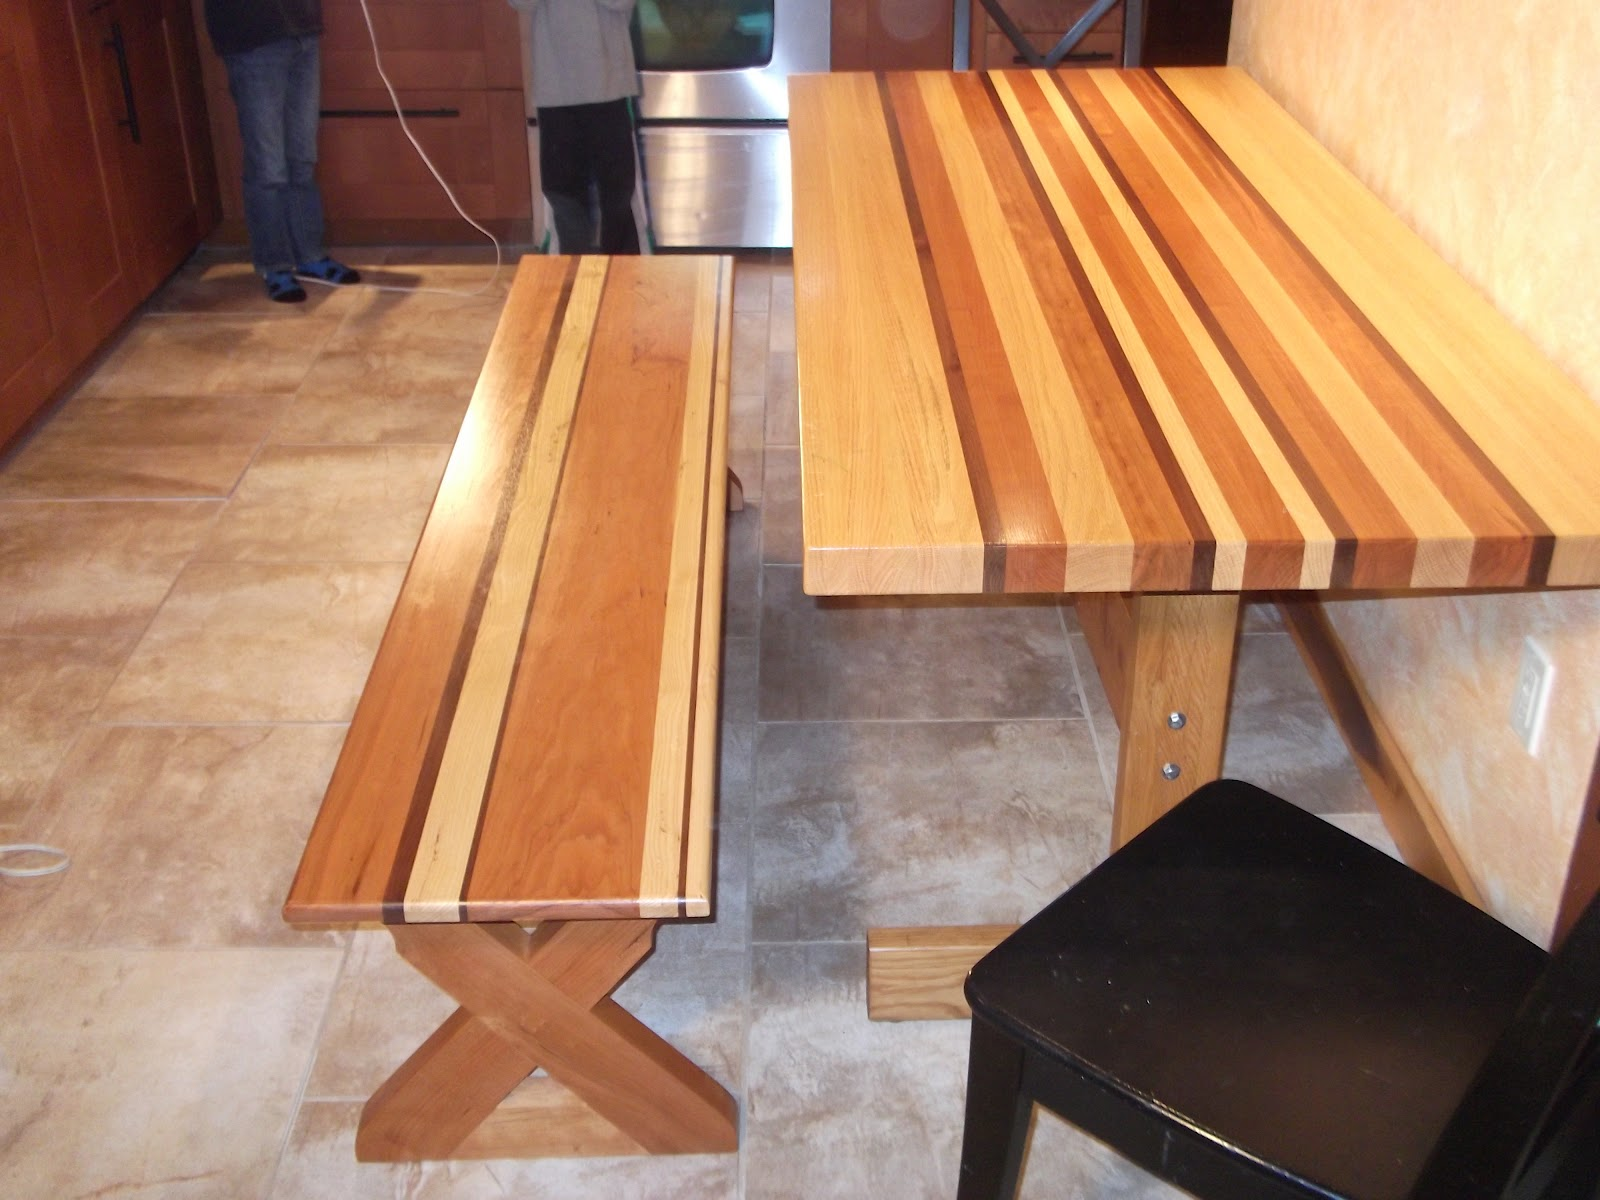 Littlewing woodwork kitchen table and bench - Exciting look kitchen table bench plans ...